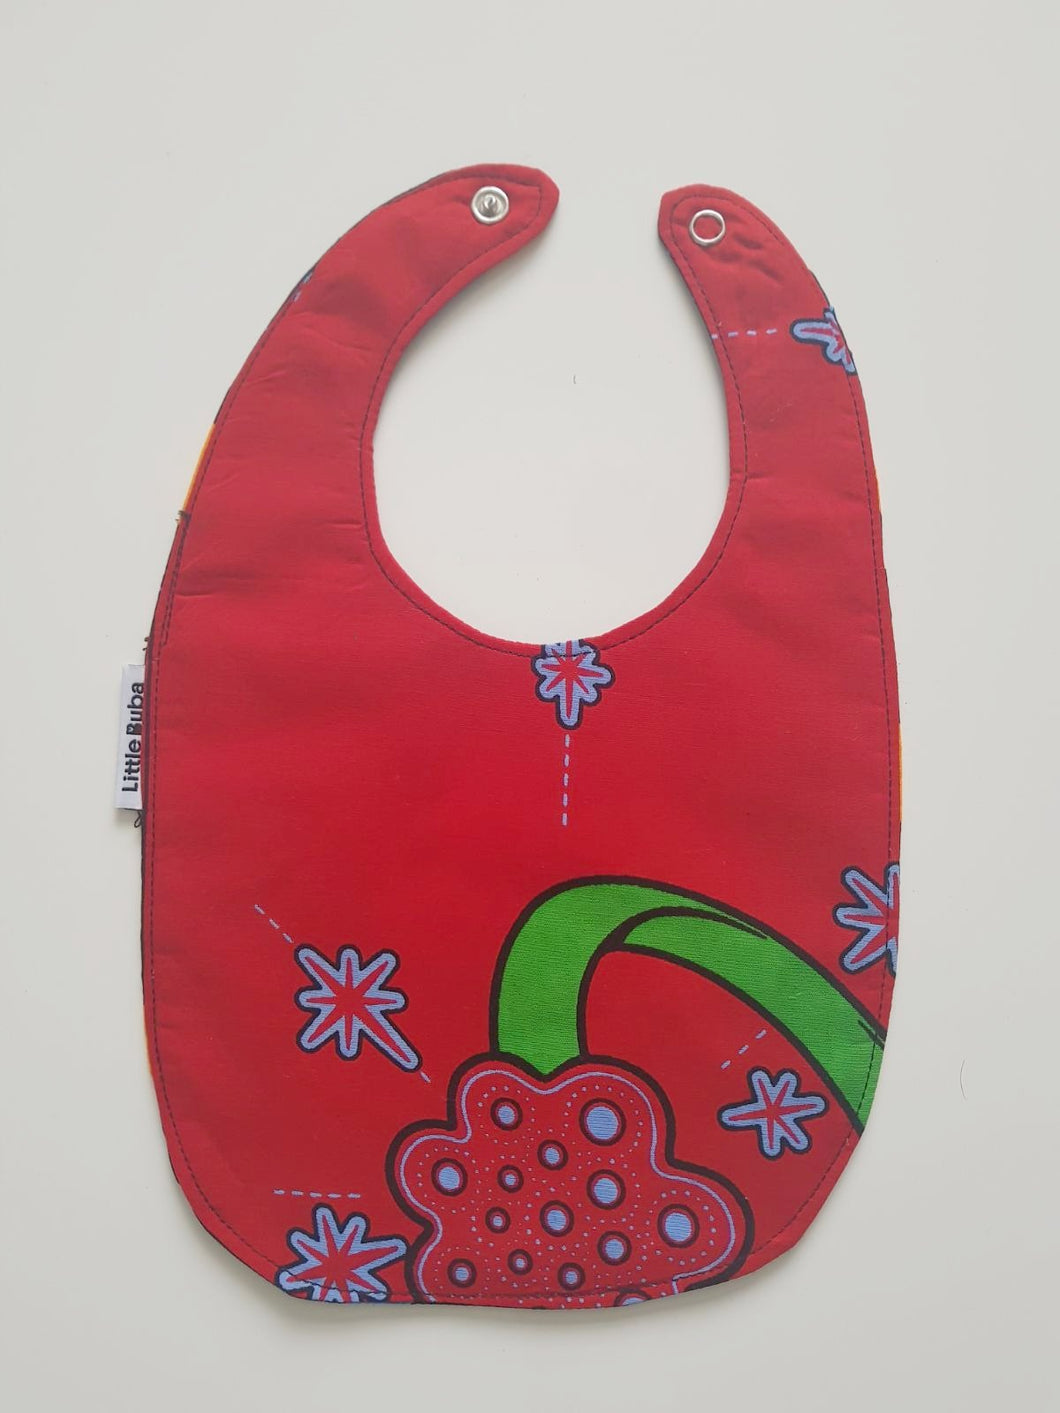 1 x Orbit Ring/Blue Planet Reversible Buba Bib